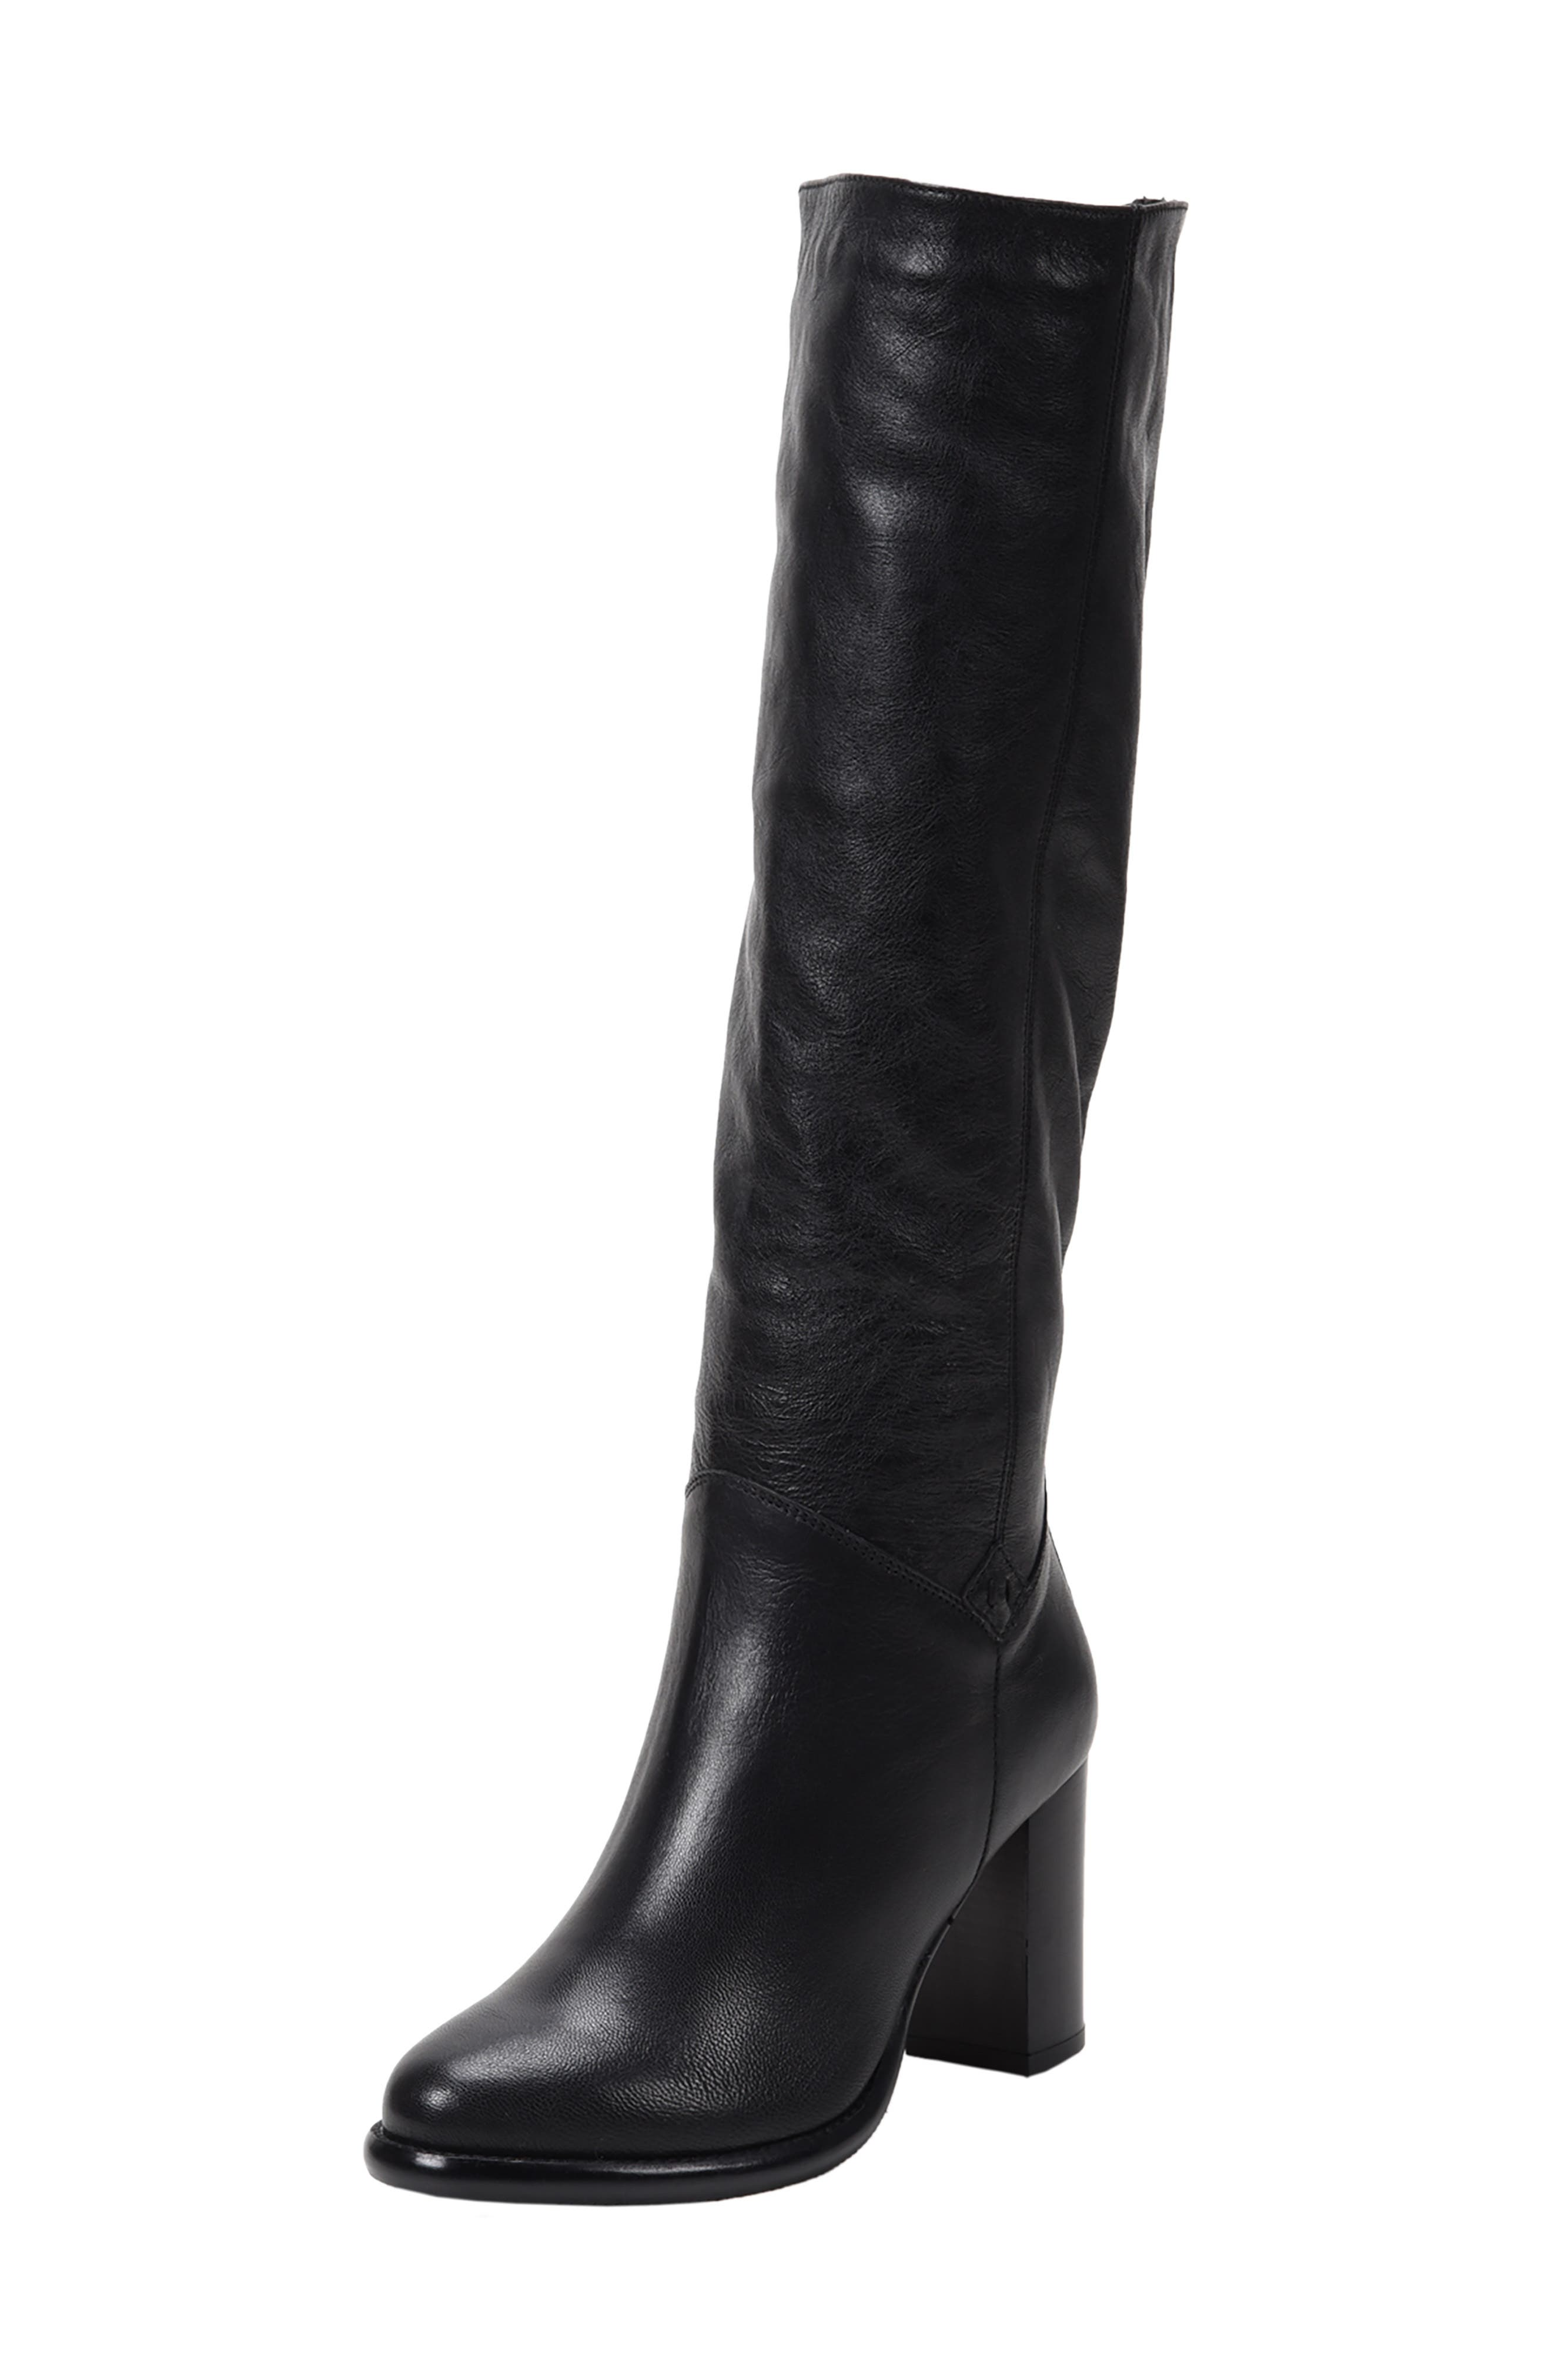 ROSS & SNOW, Michela SP Waterproof Genuine Shearling Lined Boot, Main thumbnail 1, color, BLACK METALLIC LEATHER